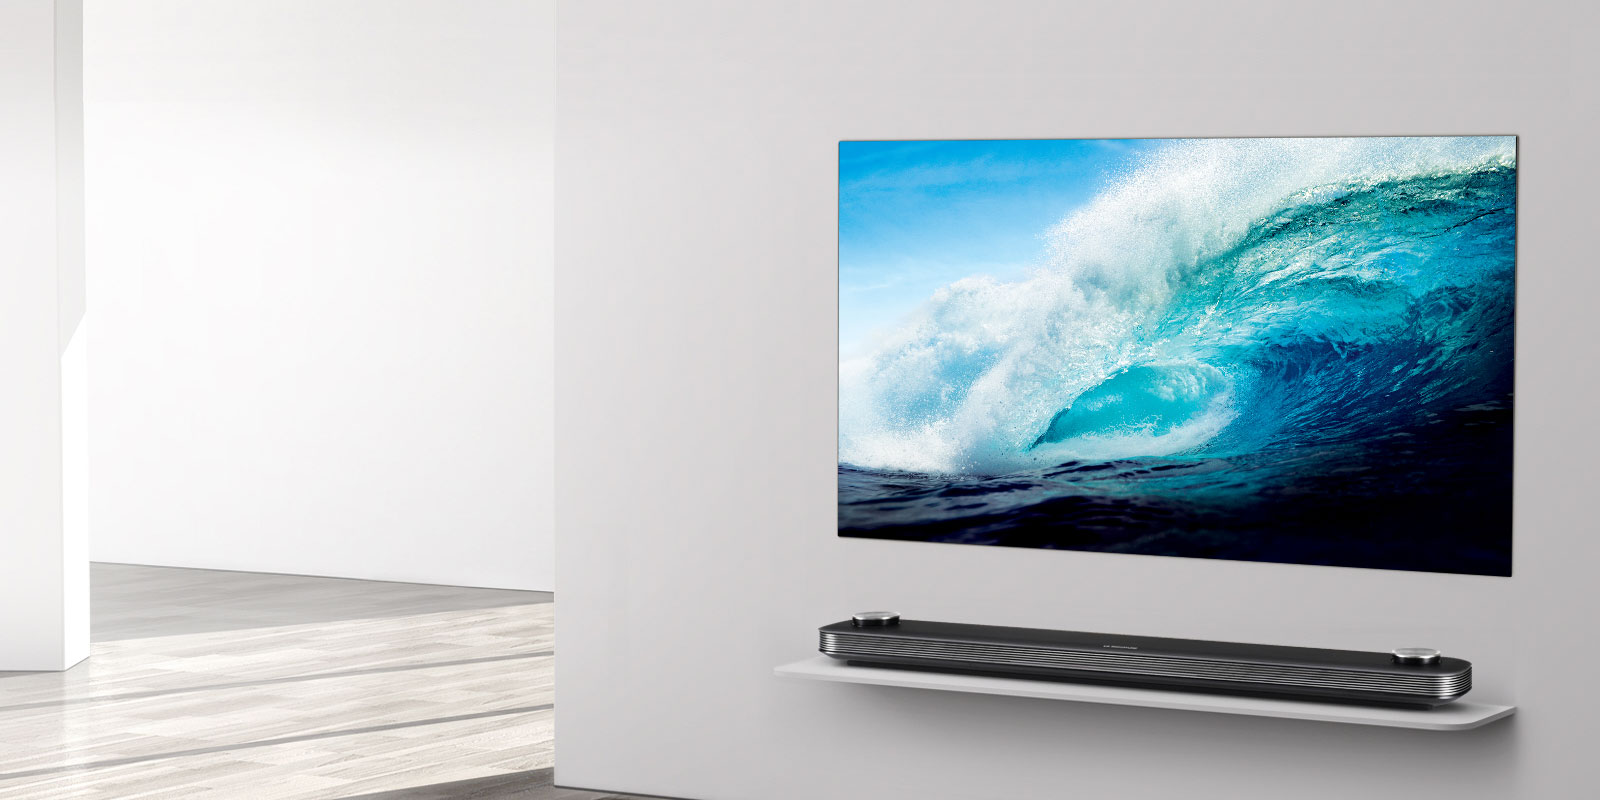 LG's 2018 ThinQ smart TVs have Google Assistant on board